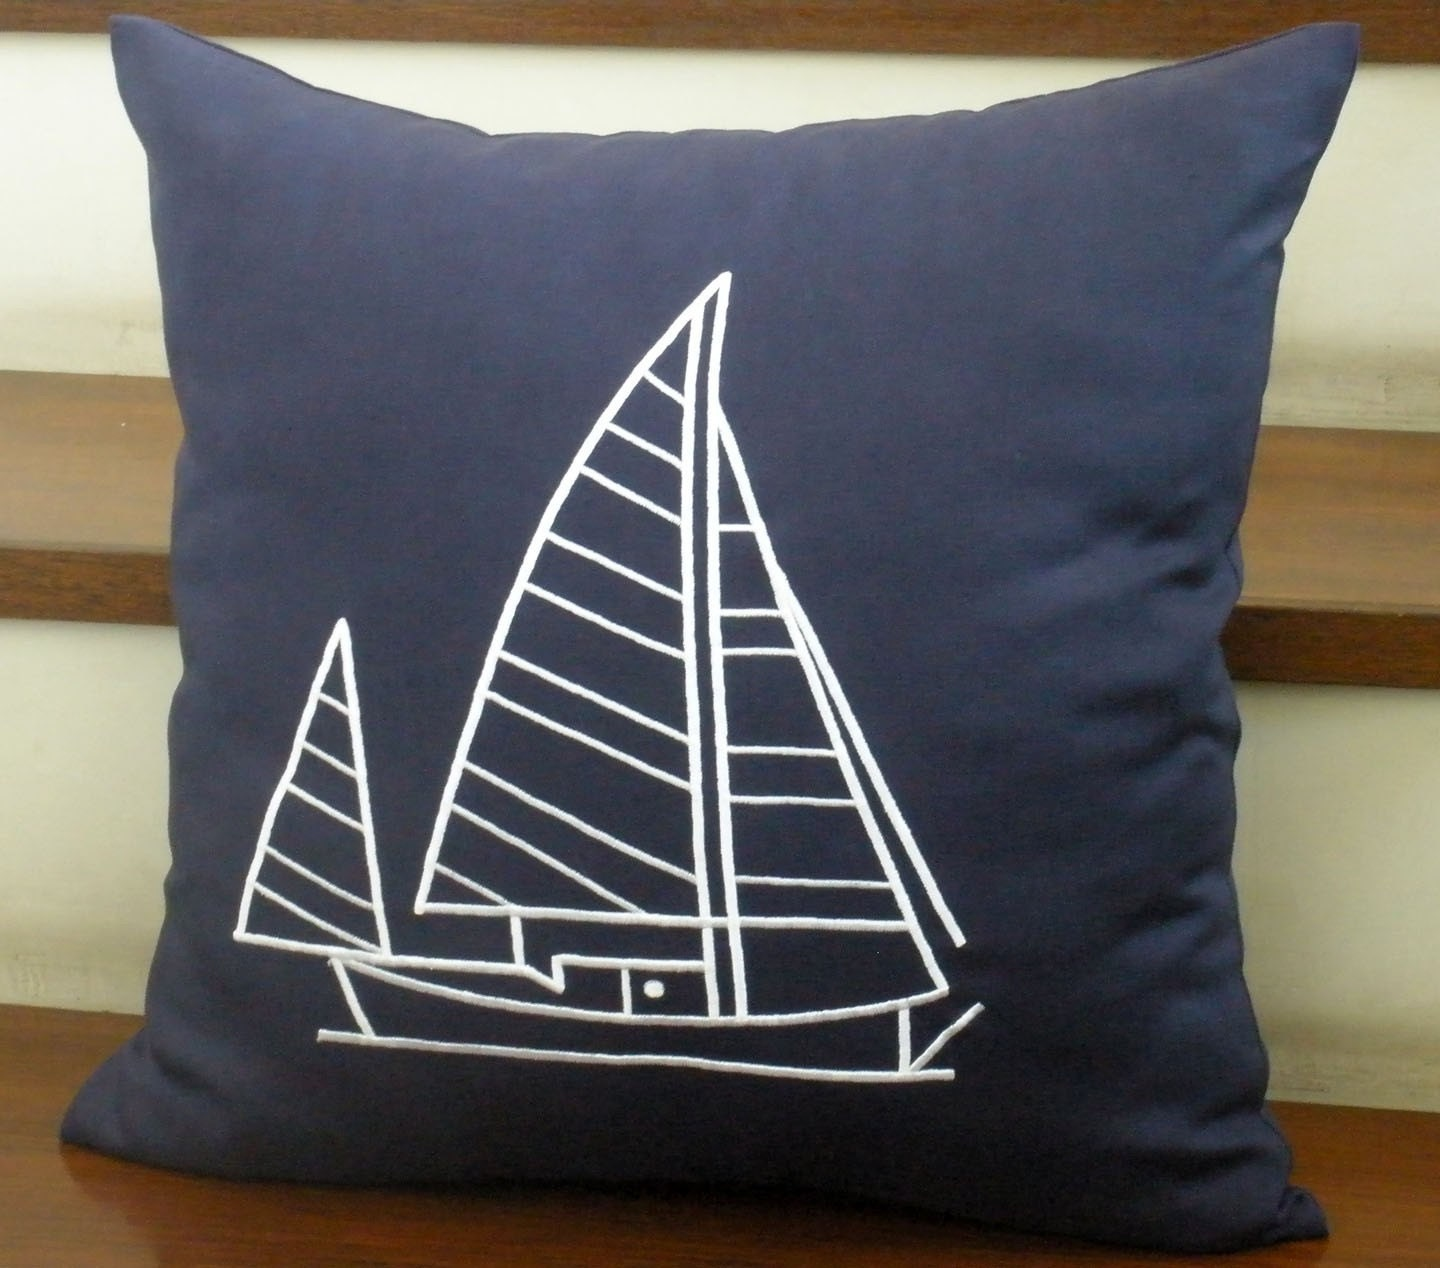 Navy Blue Linen with Sailing Ship Embroidery  Pillow Covers